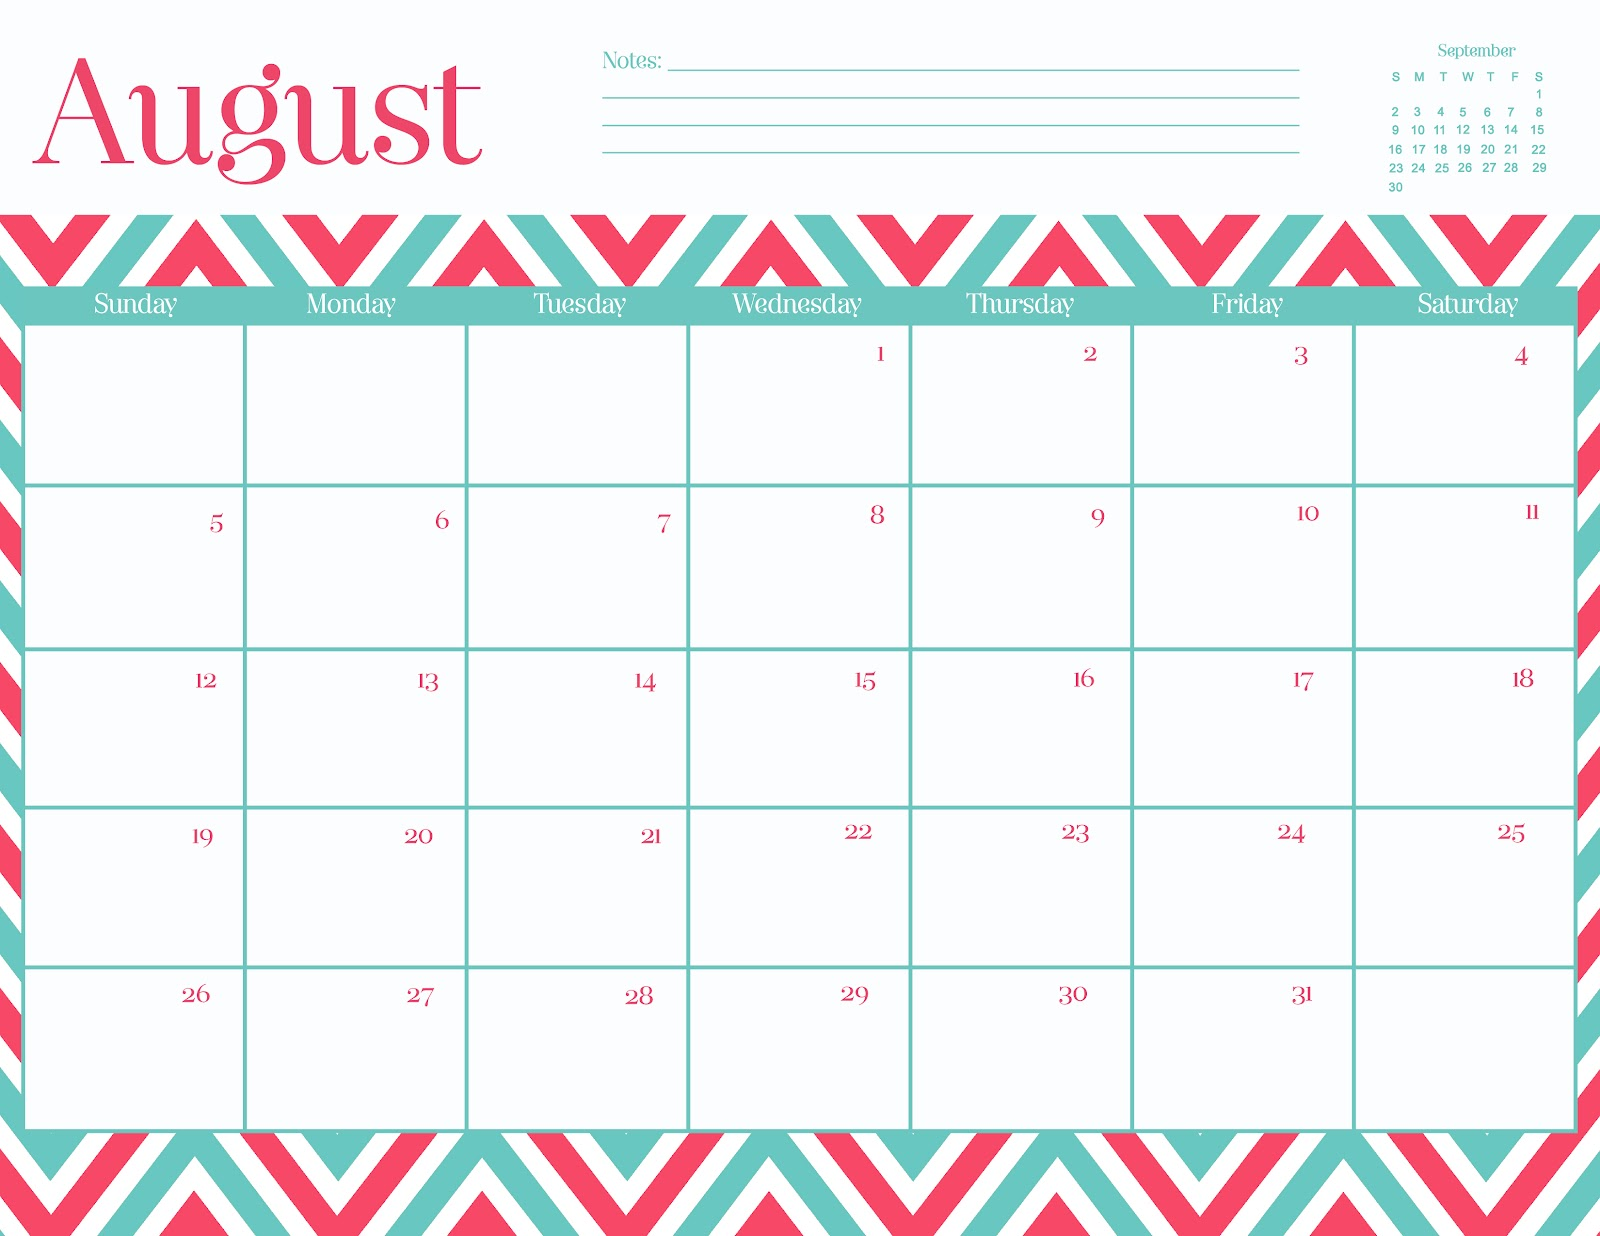 Email This BlogThis! Share to Twitter Share to Facebook Share to ...: ohsolovelyblog.blogspot.com/2012/08/free-august-printable-calendars...